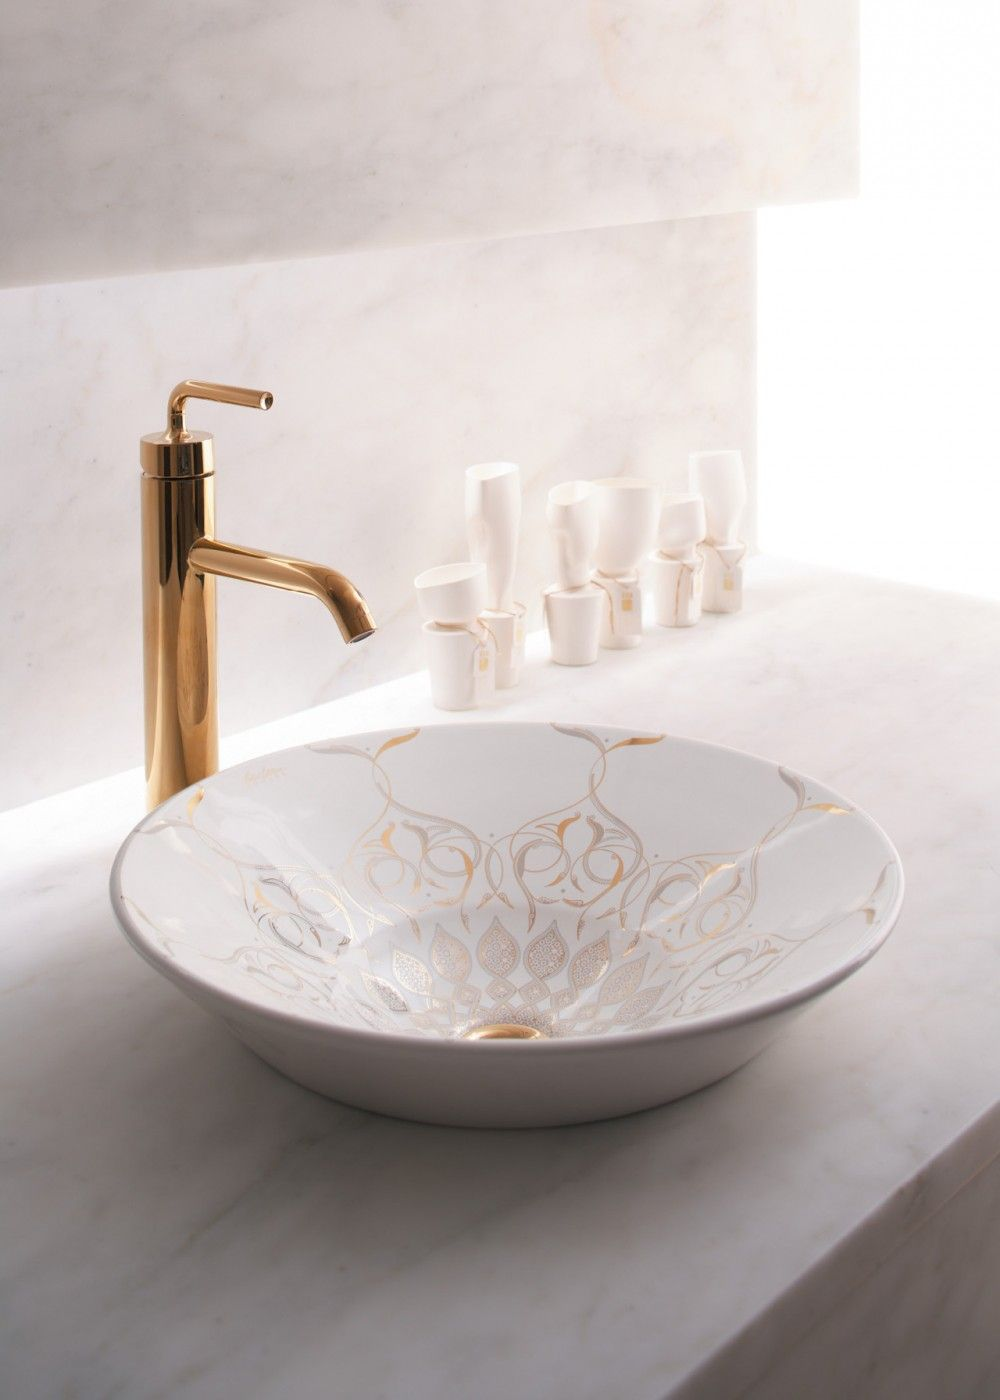 Kohler Artists Edition basins with Kohler Purist PVD rose gold ...